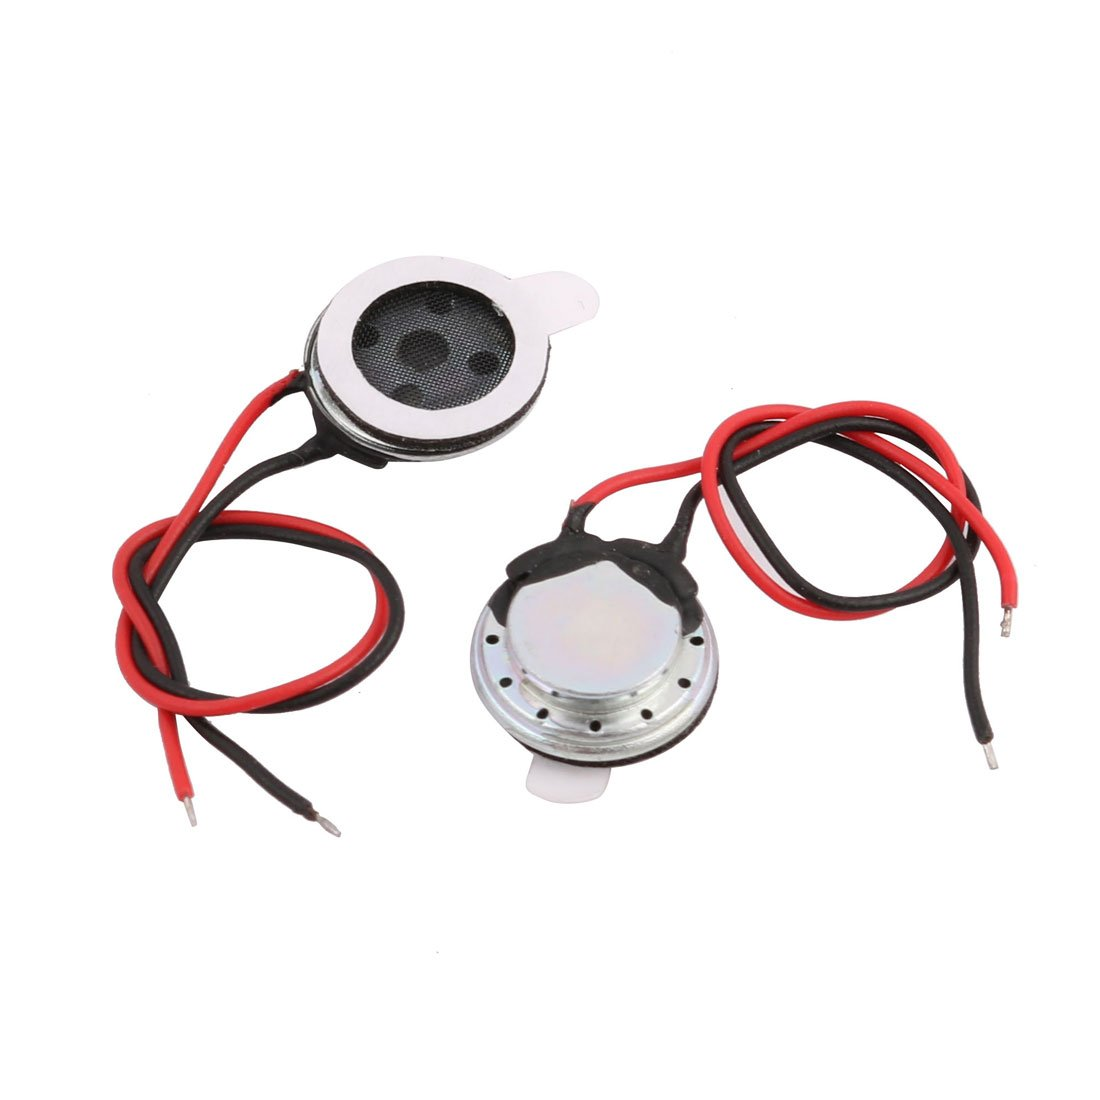 uxcell 2 Pcs 10mm Diameter Built-in Speaker 8 Ohm 1W 1000Hz for PC Computer